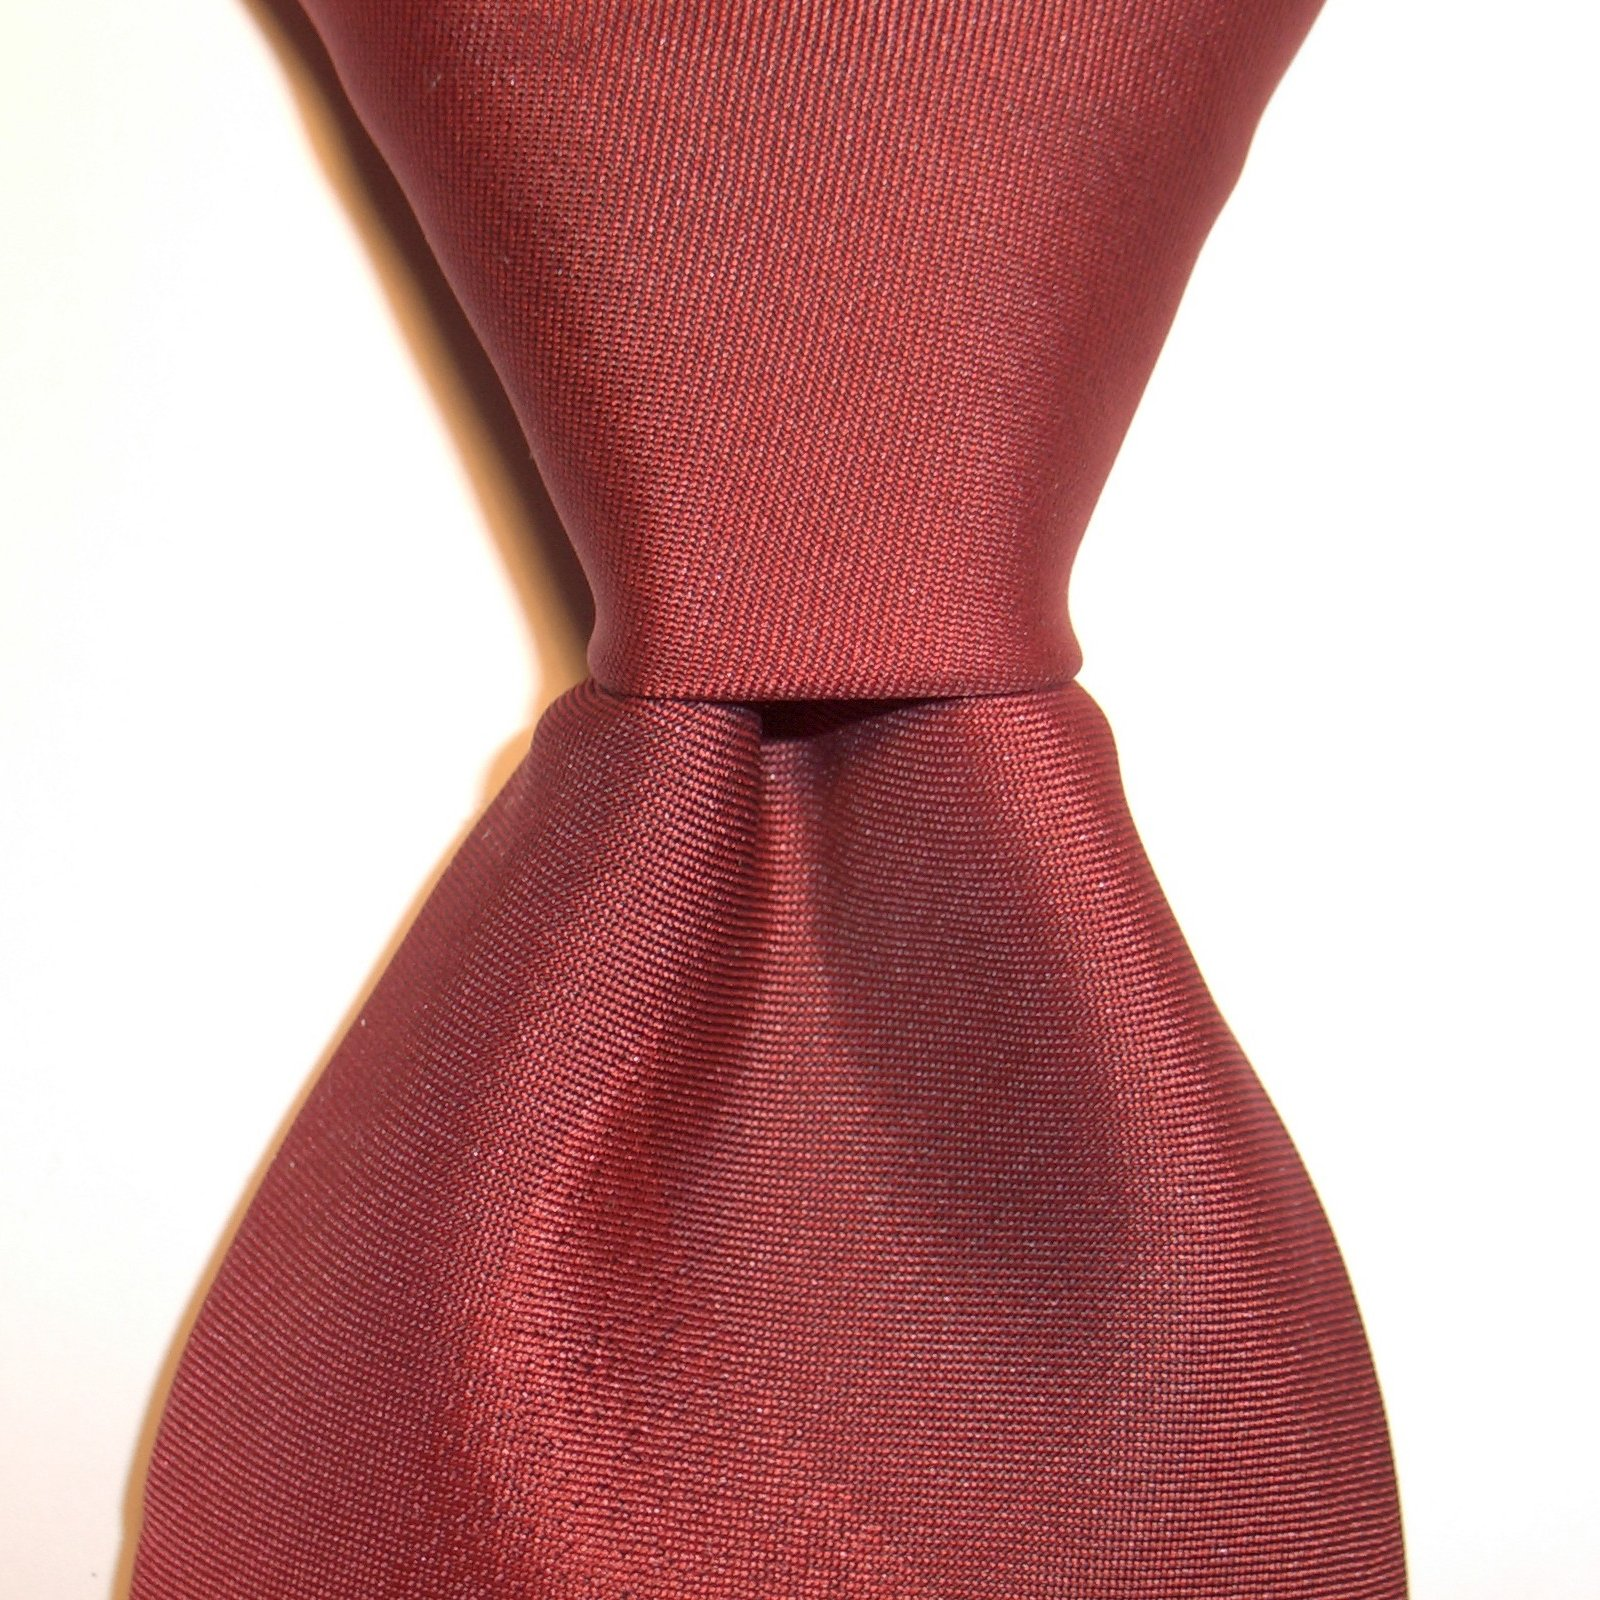 Thickness Ties, For School Name: Tie_dimpleg Views: 407 Size: 4687 Kb